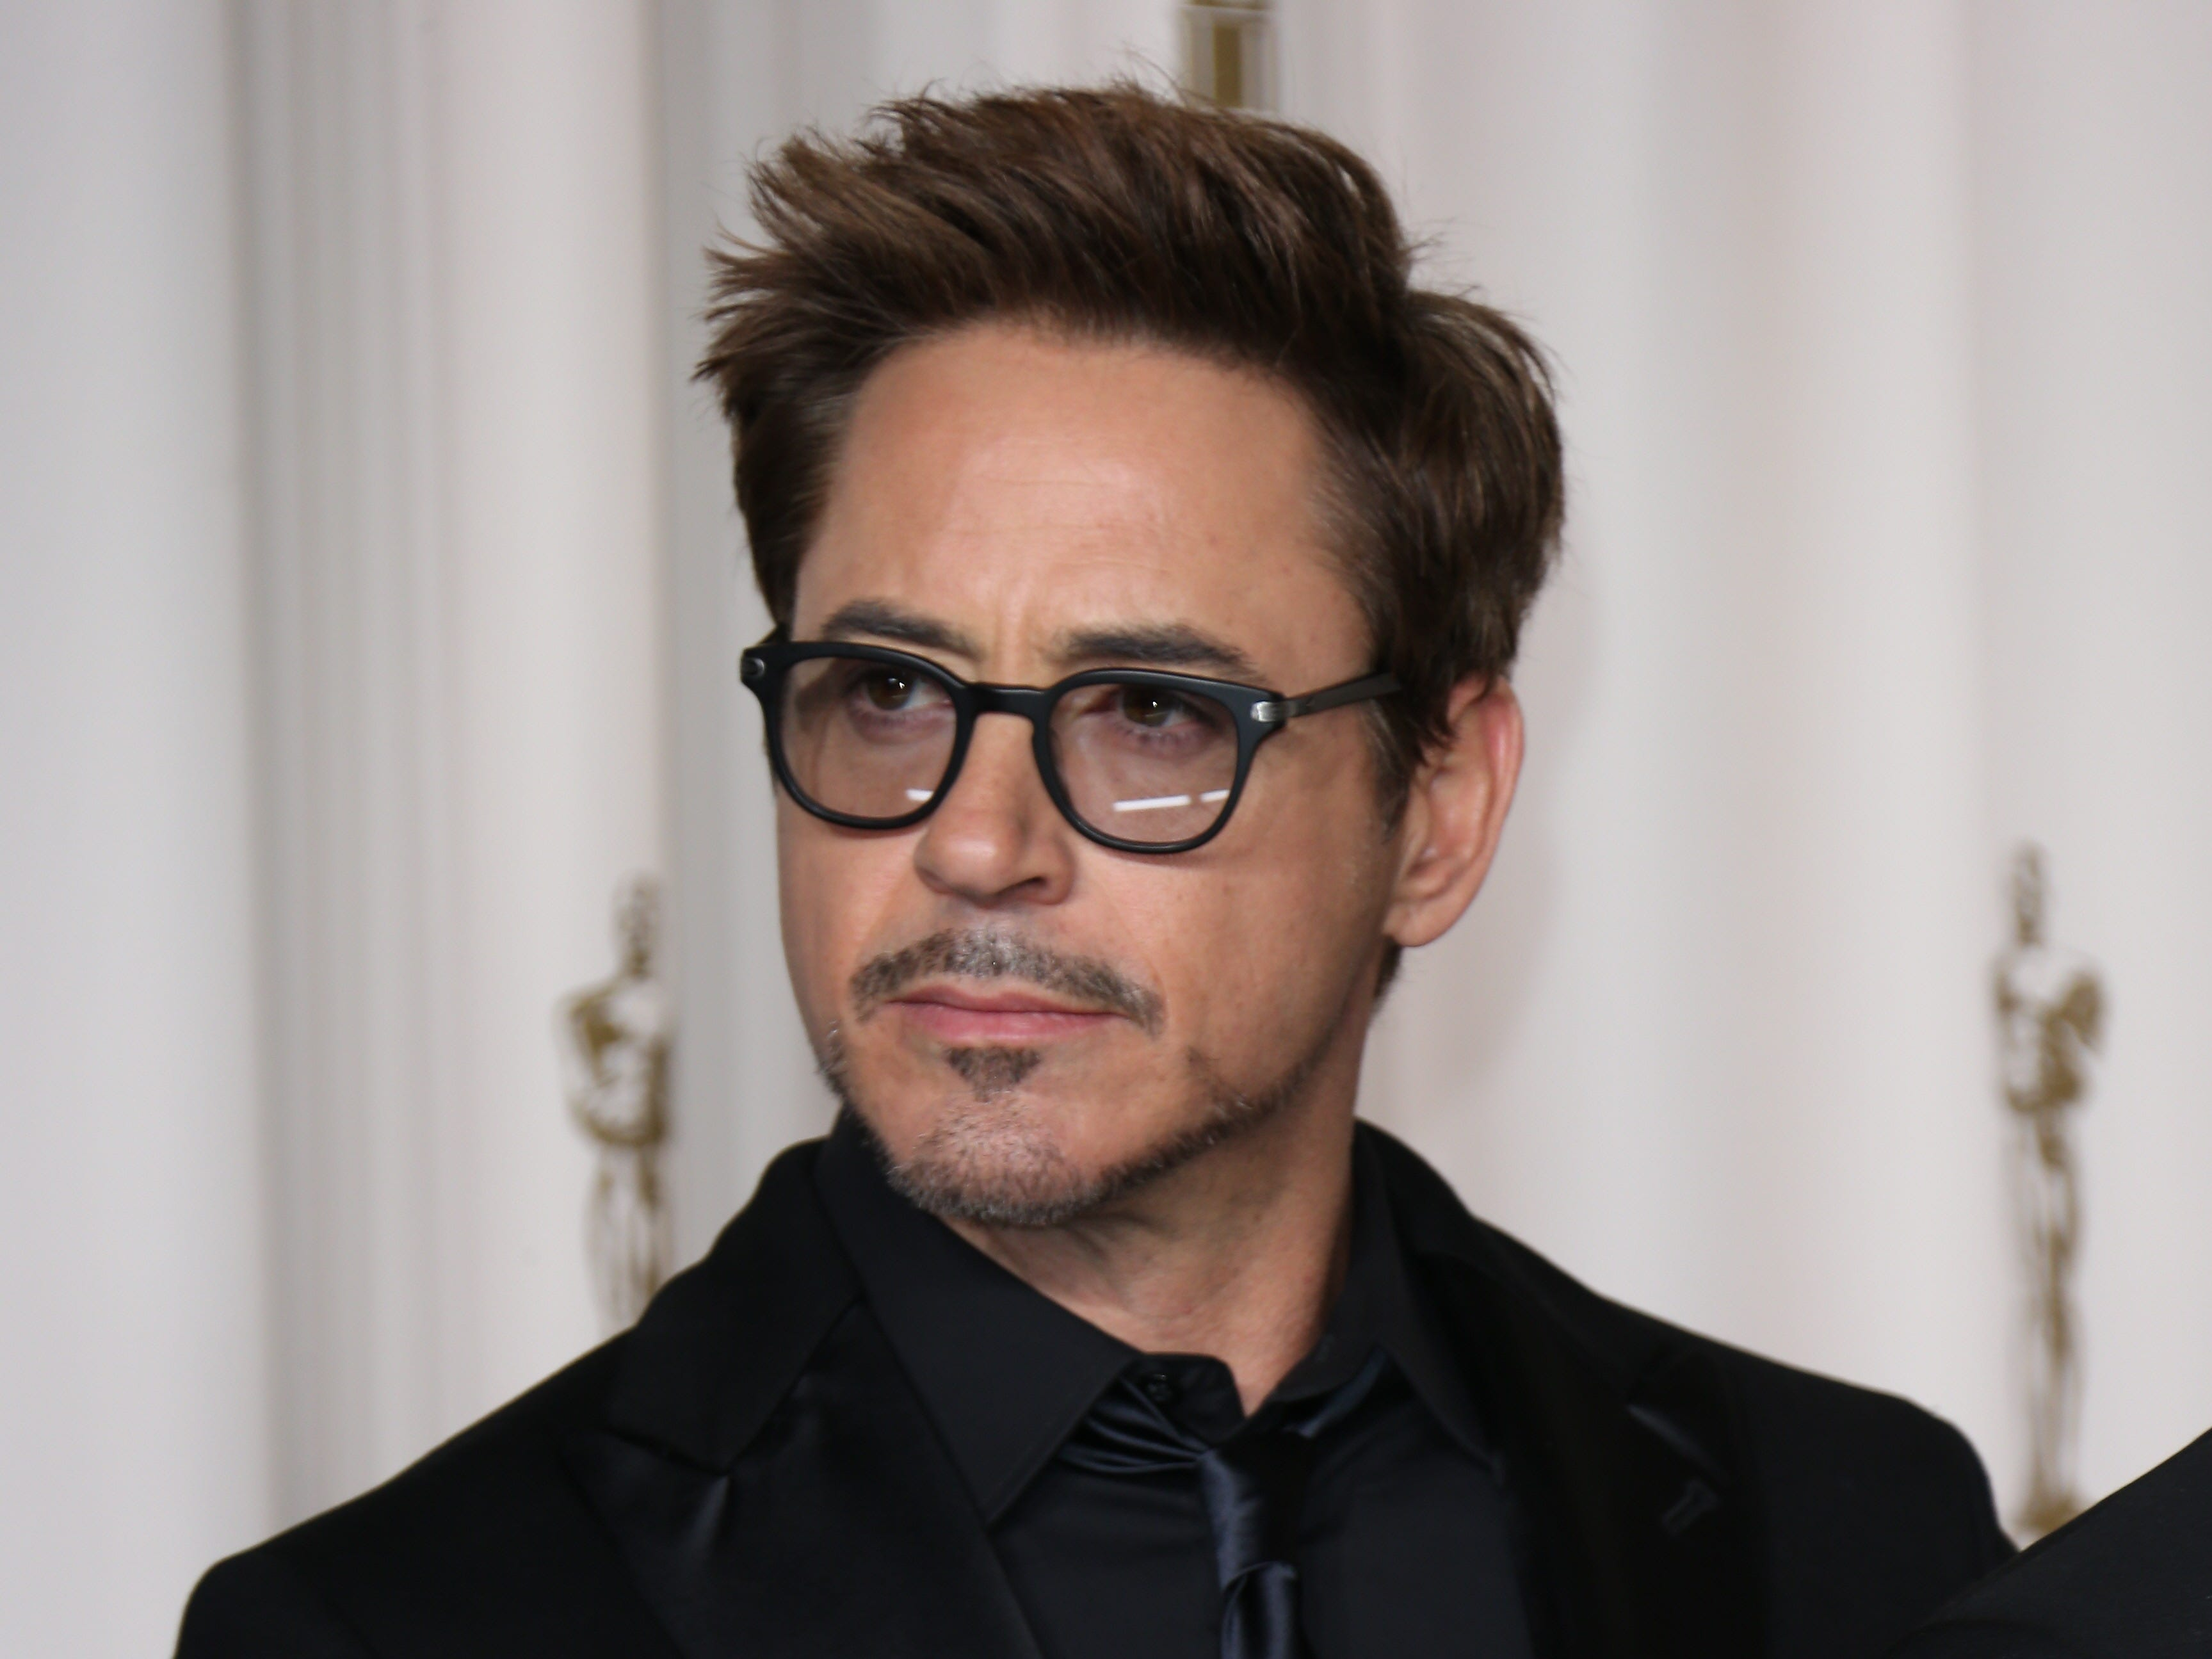 2/24/13 6:30:32 PM -- Hollywood, CA, U.S.A  Robert Downey Jr. poses in the photo room at the 85th annual Academy Awards --  PHOTO EMBARGOED UNTIL LAST CREDIT ROLLS ON OSCARS TELECAST   Photo by Dan MacMedan, USA TODAY contract photographer   ORG XMIT: DM 42987 2013 ACADEMY AWA 2/20/2013  [Via MerlinFTP Drop]